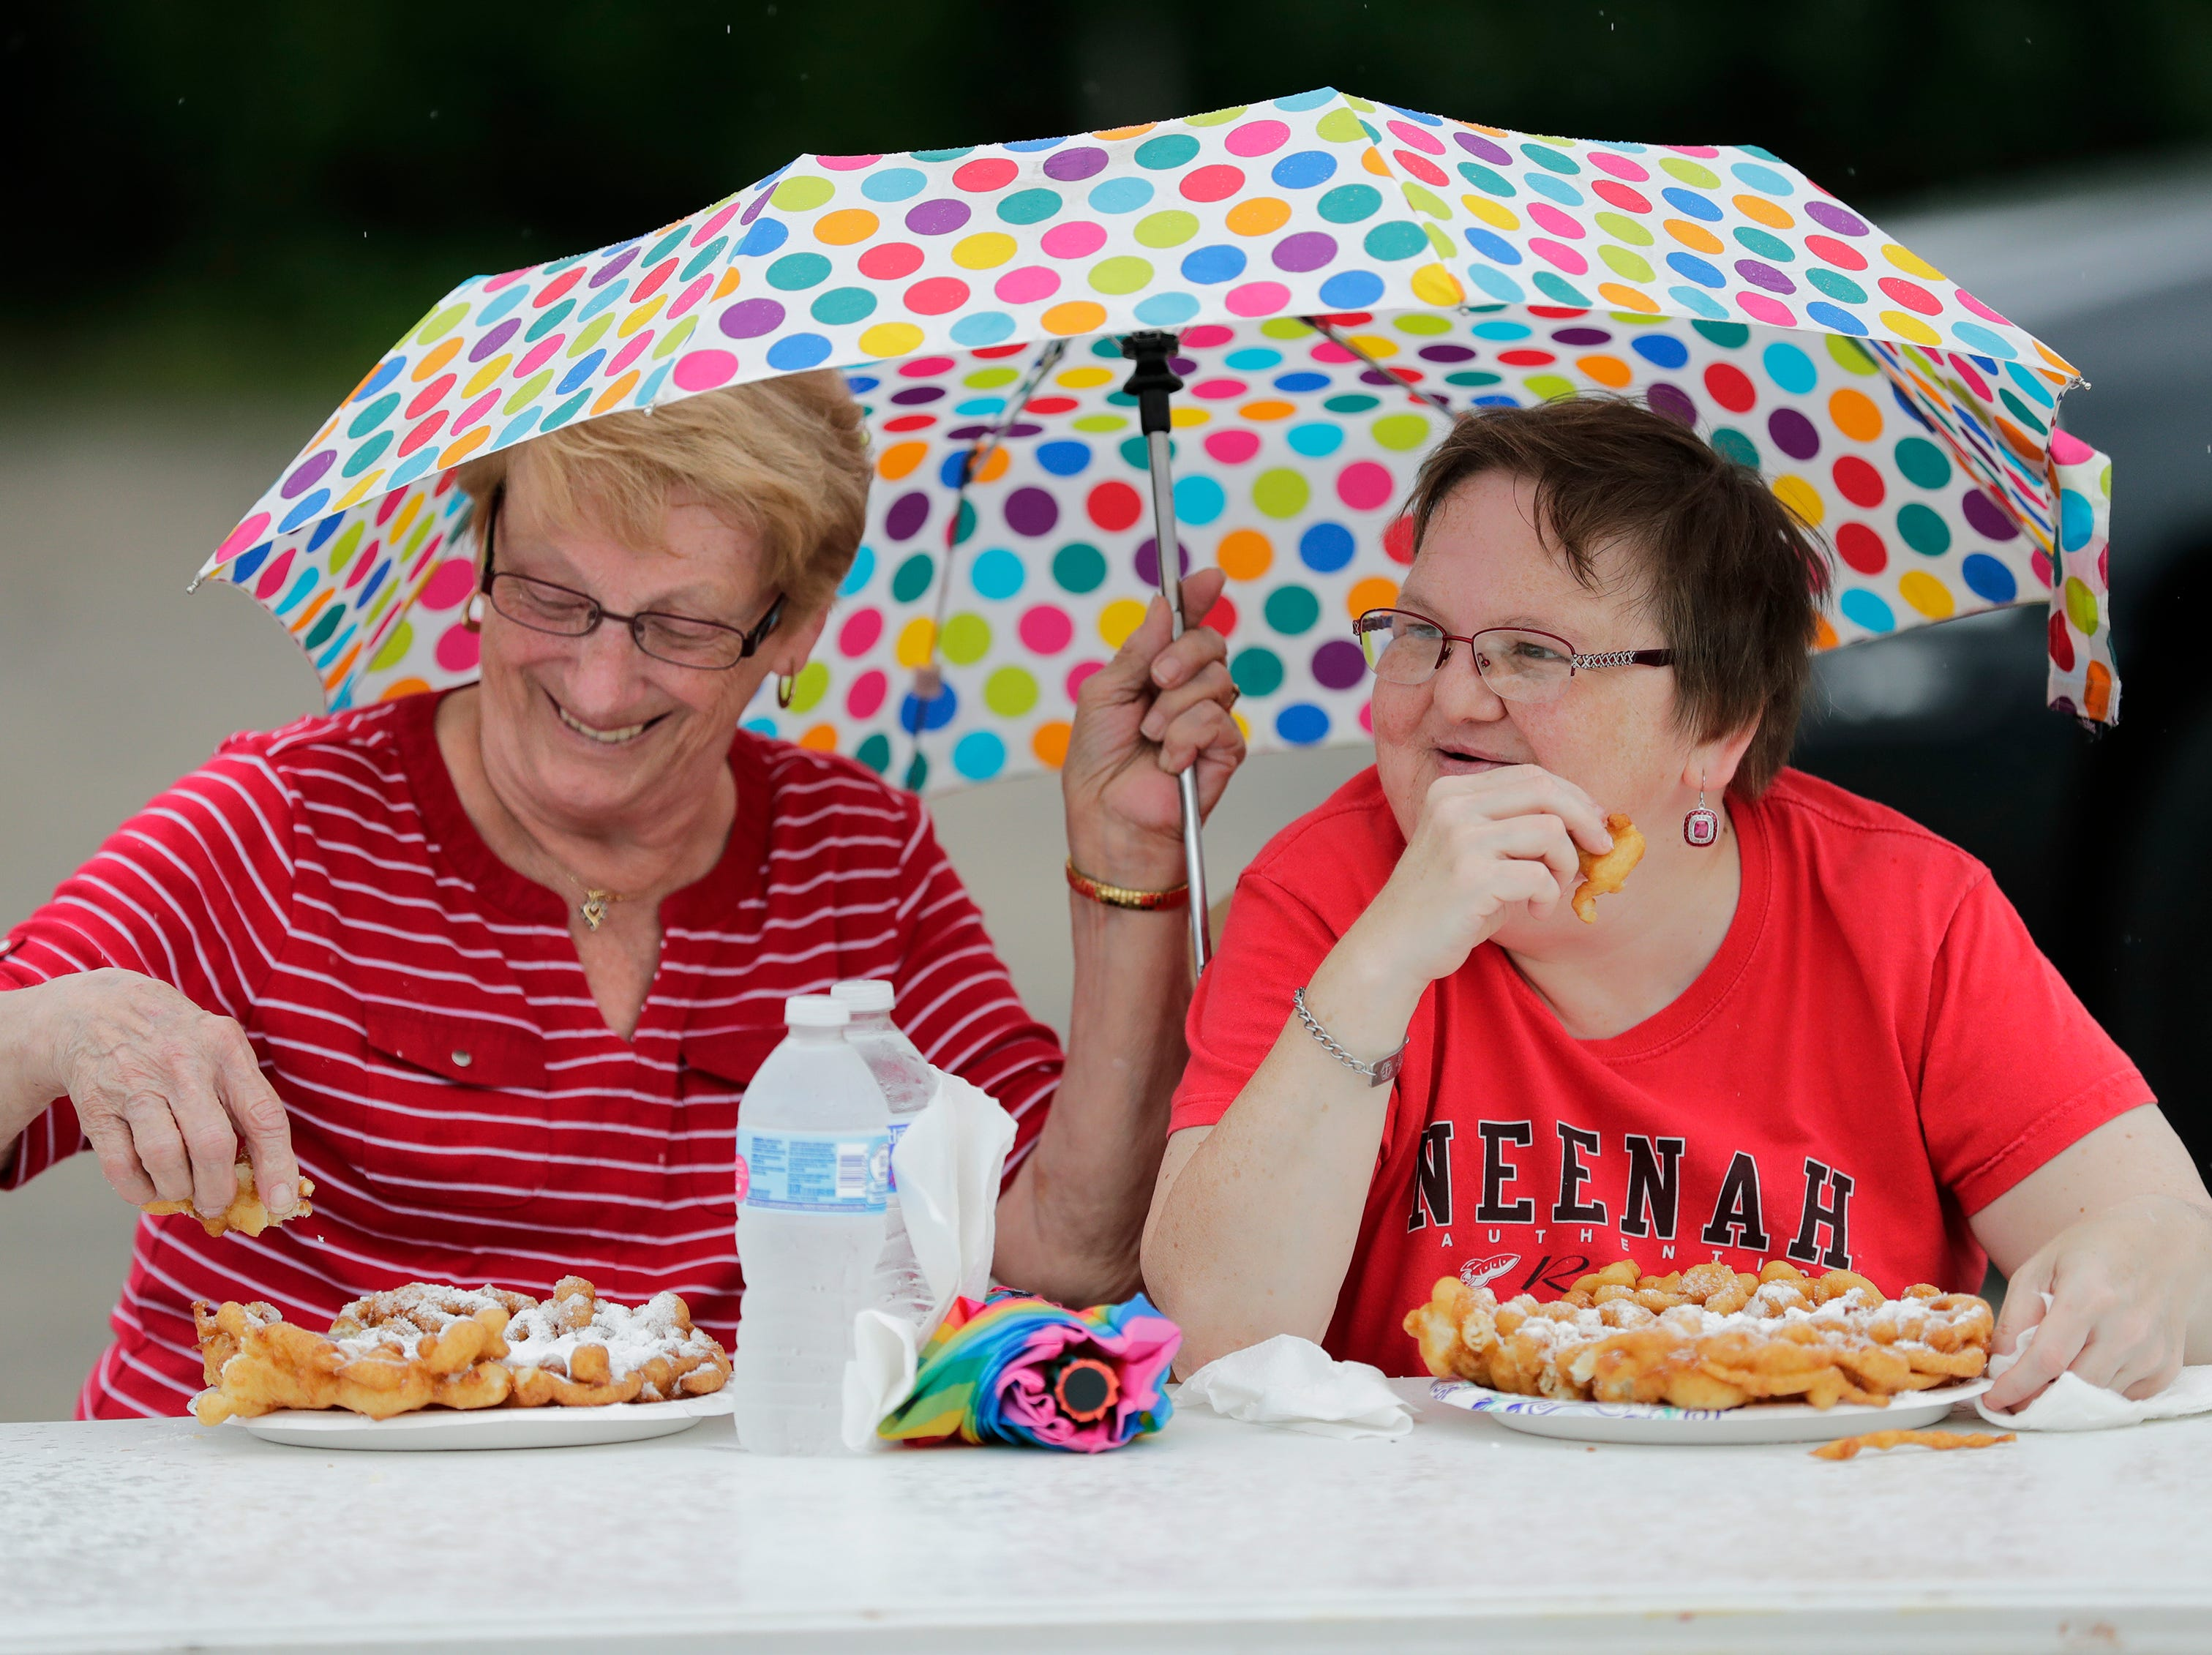 Jane Mrotek, left, and her daughter Laura Mrotek of Neenah eat funnel cake together as they escape the rain during Bazaar After Dark Thursday, July 19, 2018, in Neenah, Wis. The event is hosted Pulse Young Professionals Network at the Fox Cities Chamber.